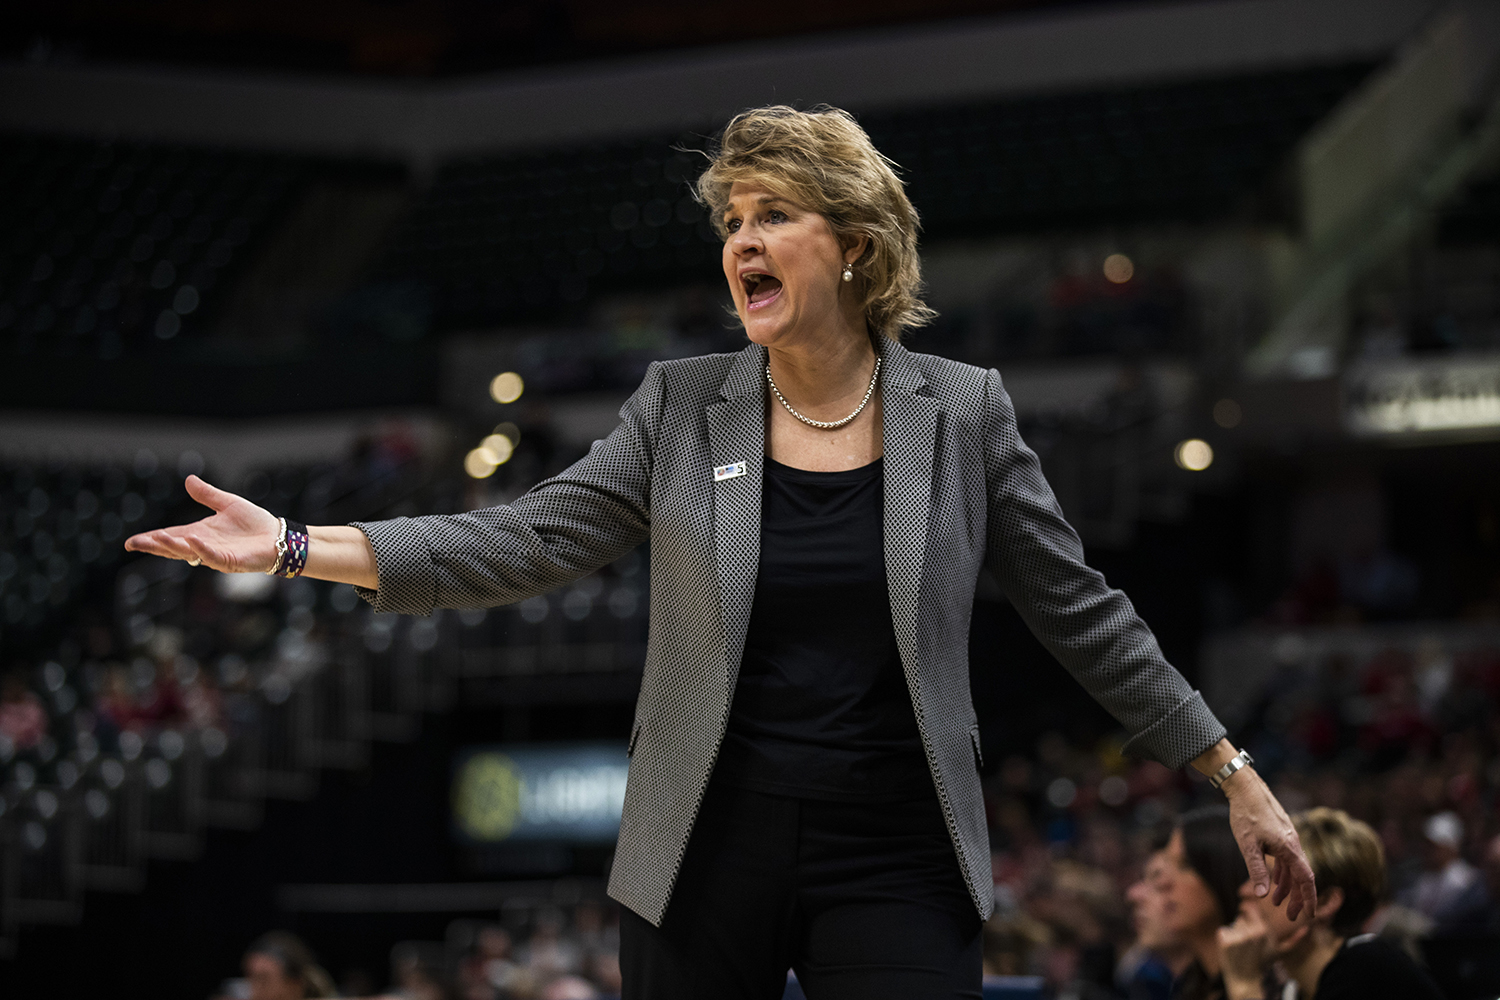 Iowa head coach Lisa Bluder reacts to a call during the women's Big Ten tournament basketball game vs. Indiana at Bankers Life Fieldhouse on Friday, March 8, 2019. The Hawkeyes defeated the Hoosiers 70-61.